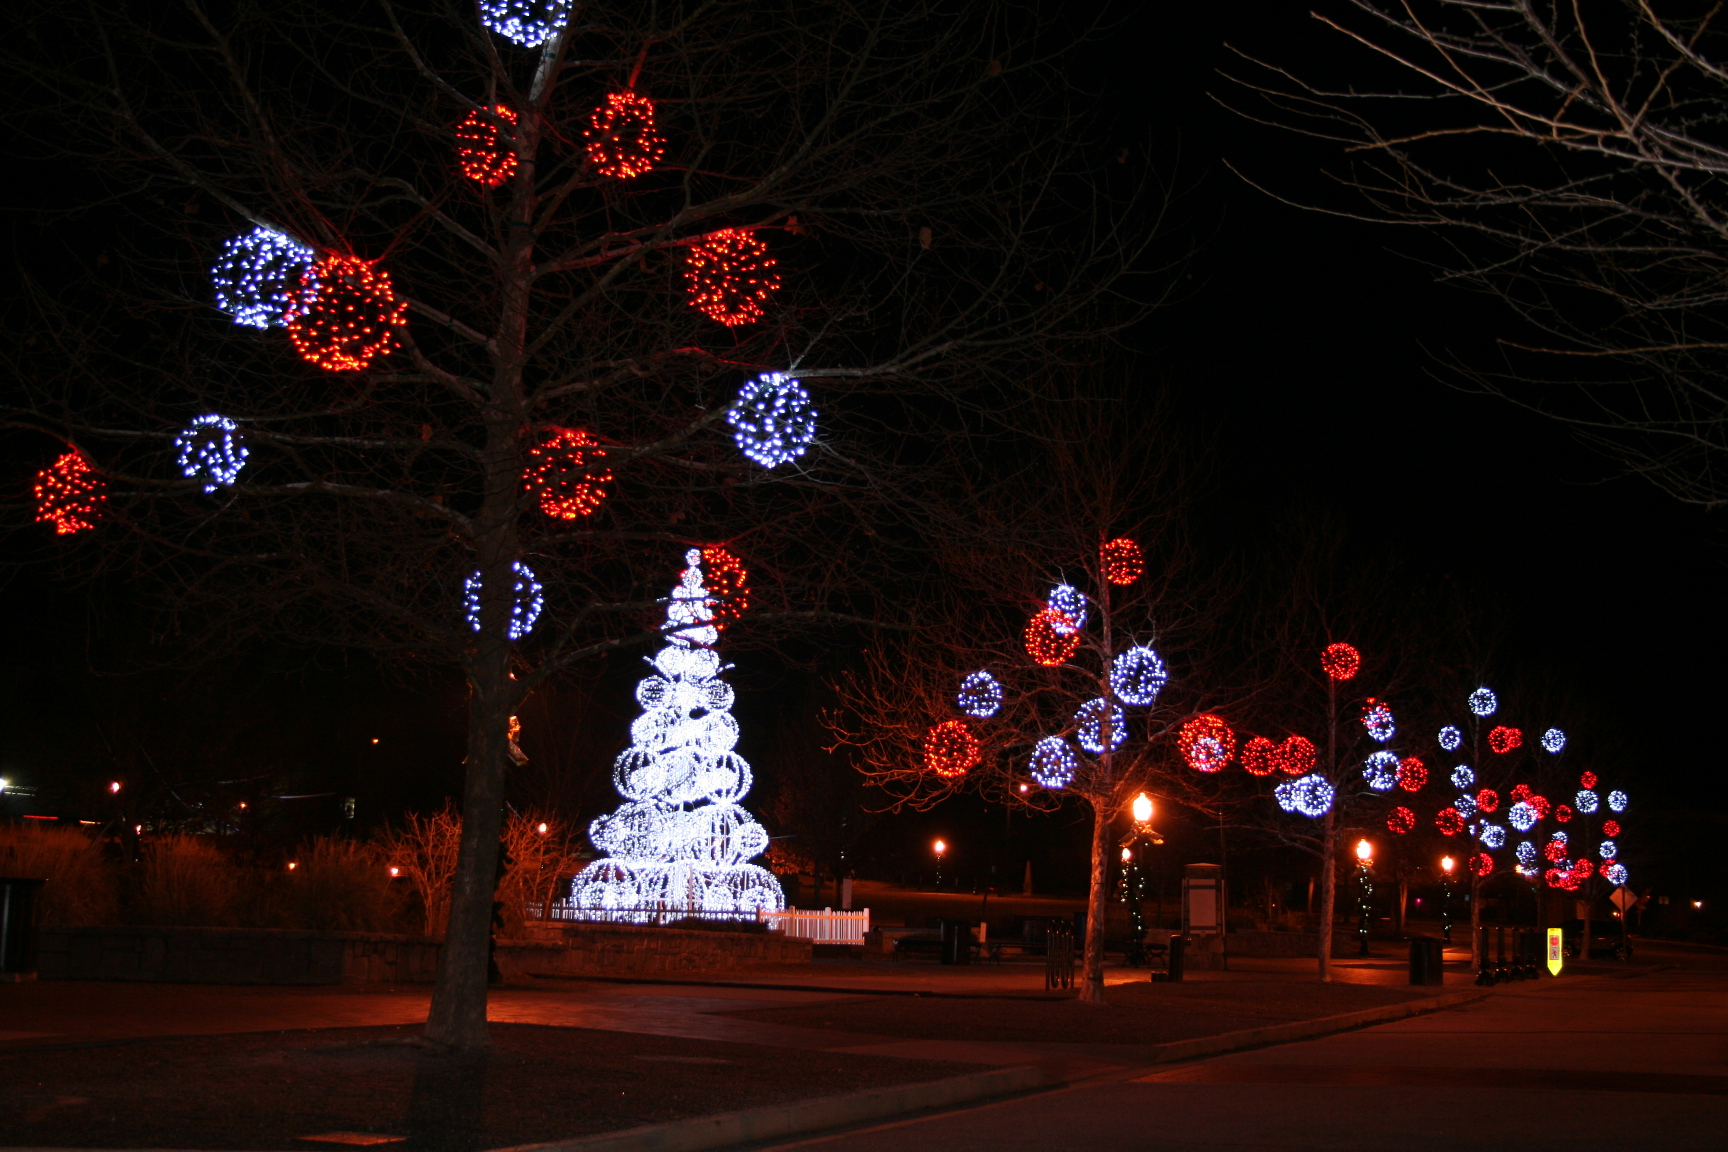 Our Hanging LED Speres with our Sphere Tree at Suwanee City Center